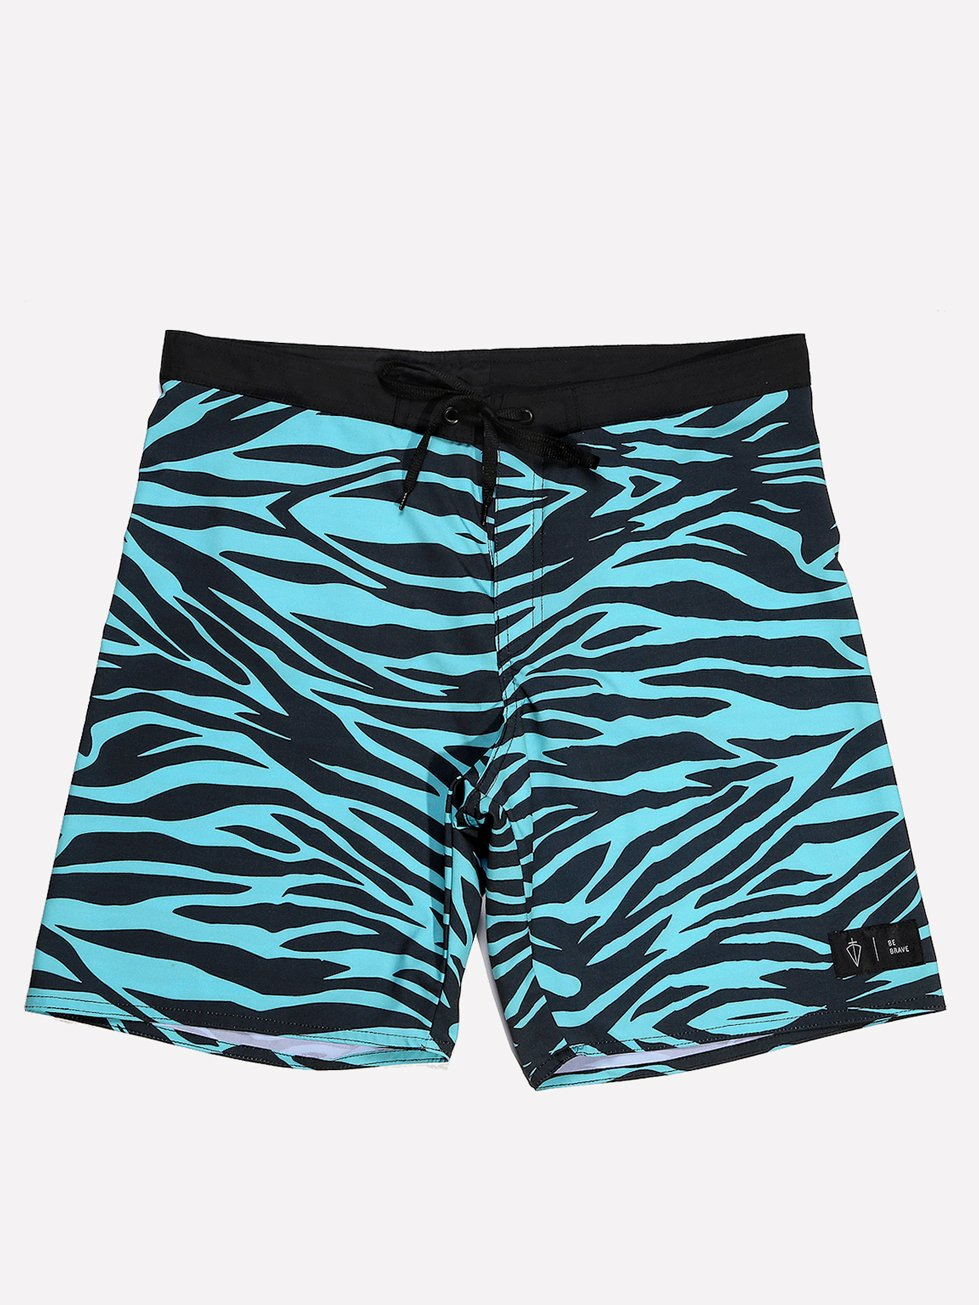 Foto do Boardshort OLIV MP // Z-Blue